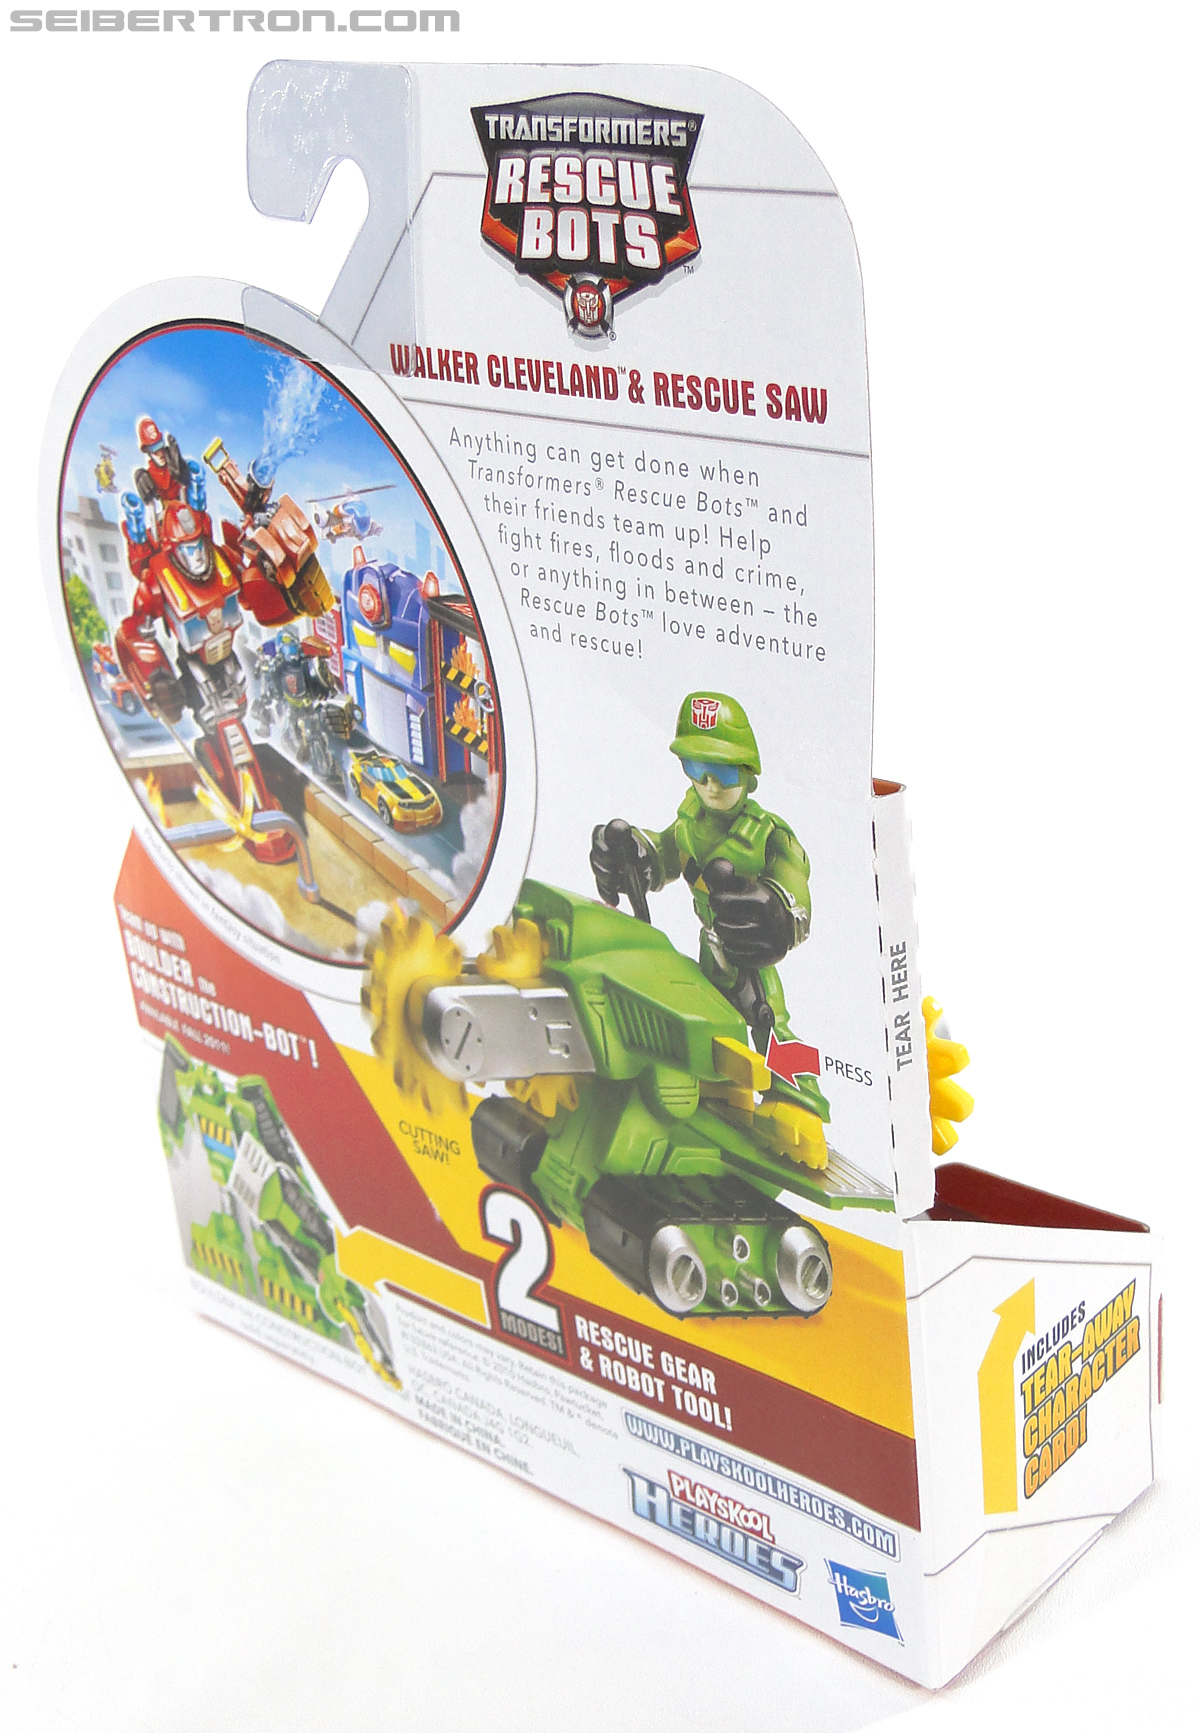 Transformers Rescue Bots Walker Cleveland & Rescue Saw (Image #7 of 98)